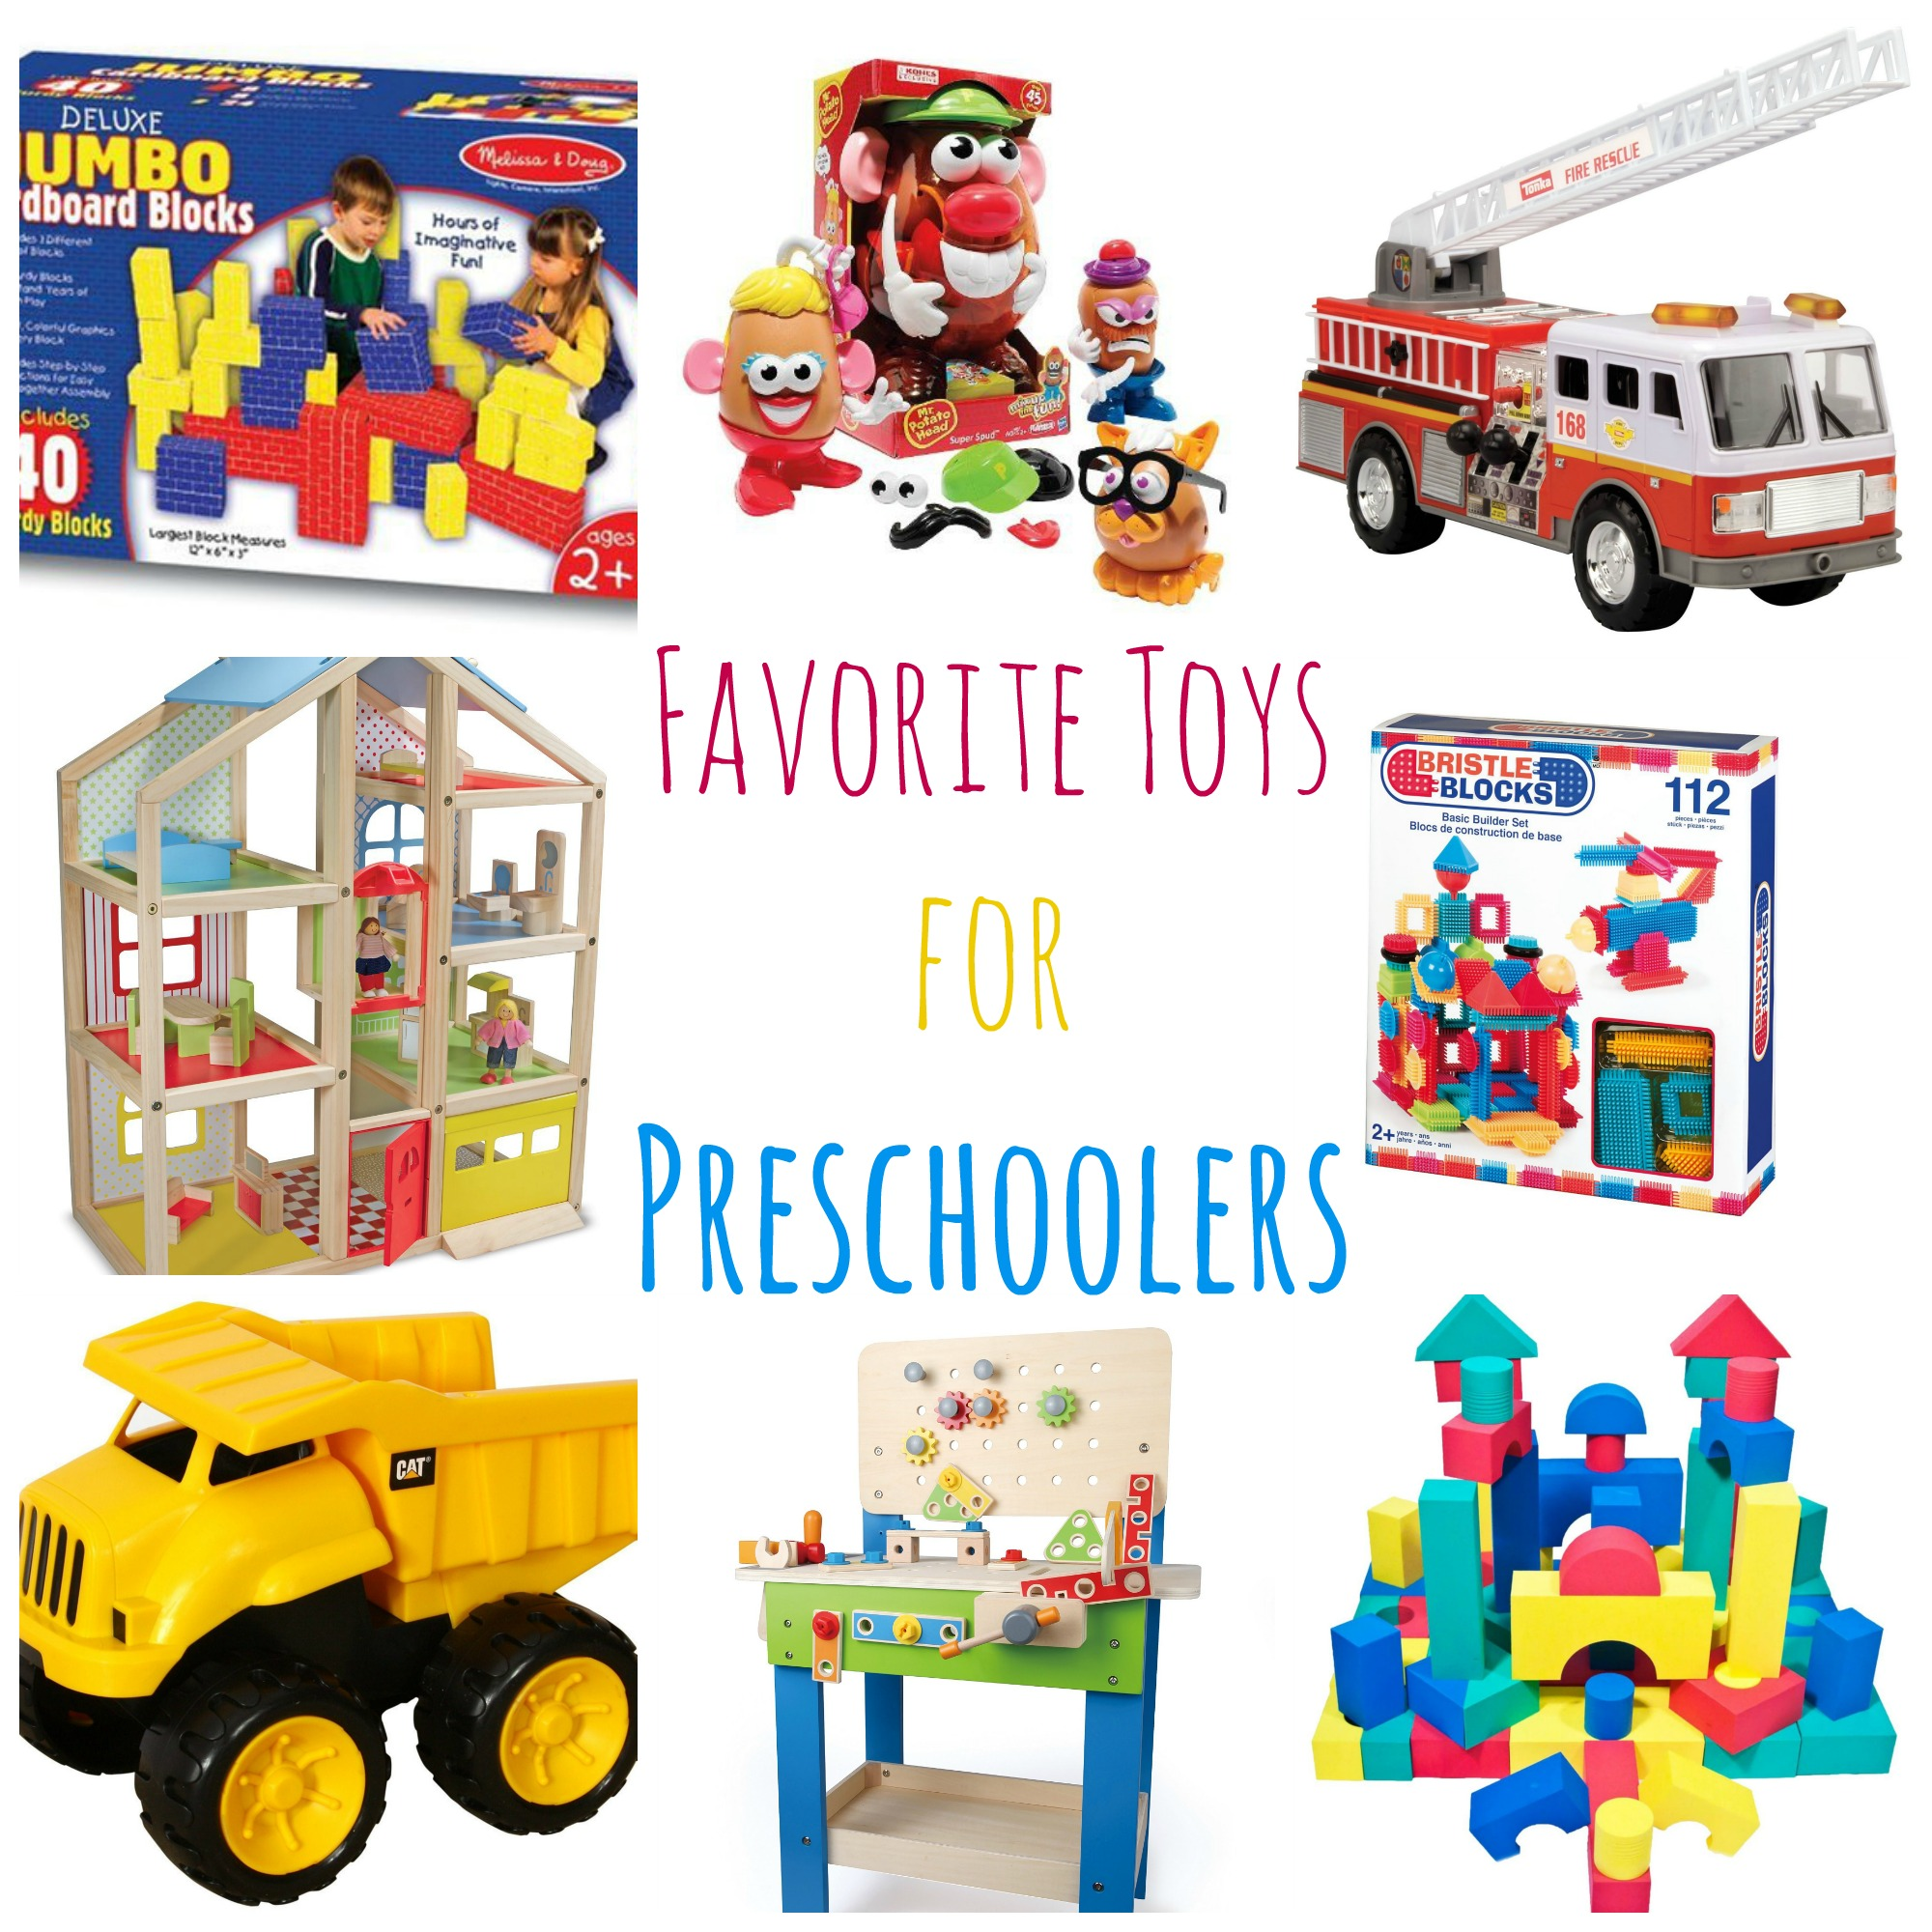 The Best Of toys for Preschoolers Pictures